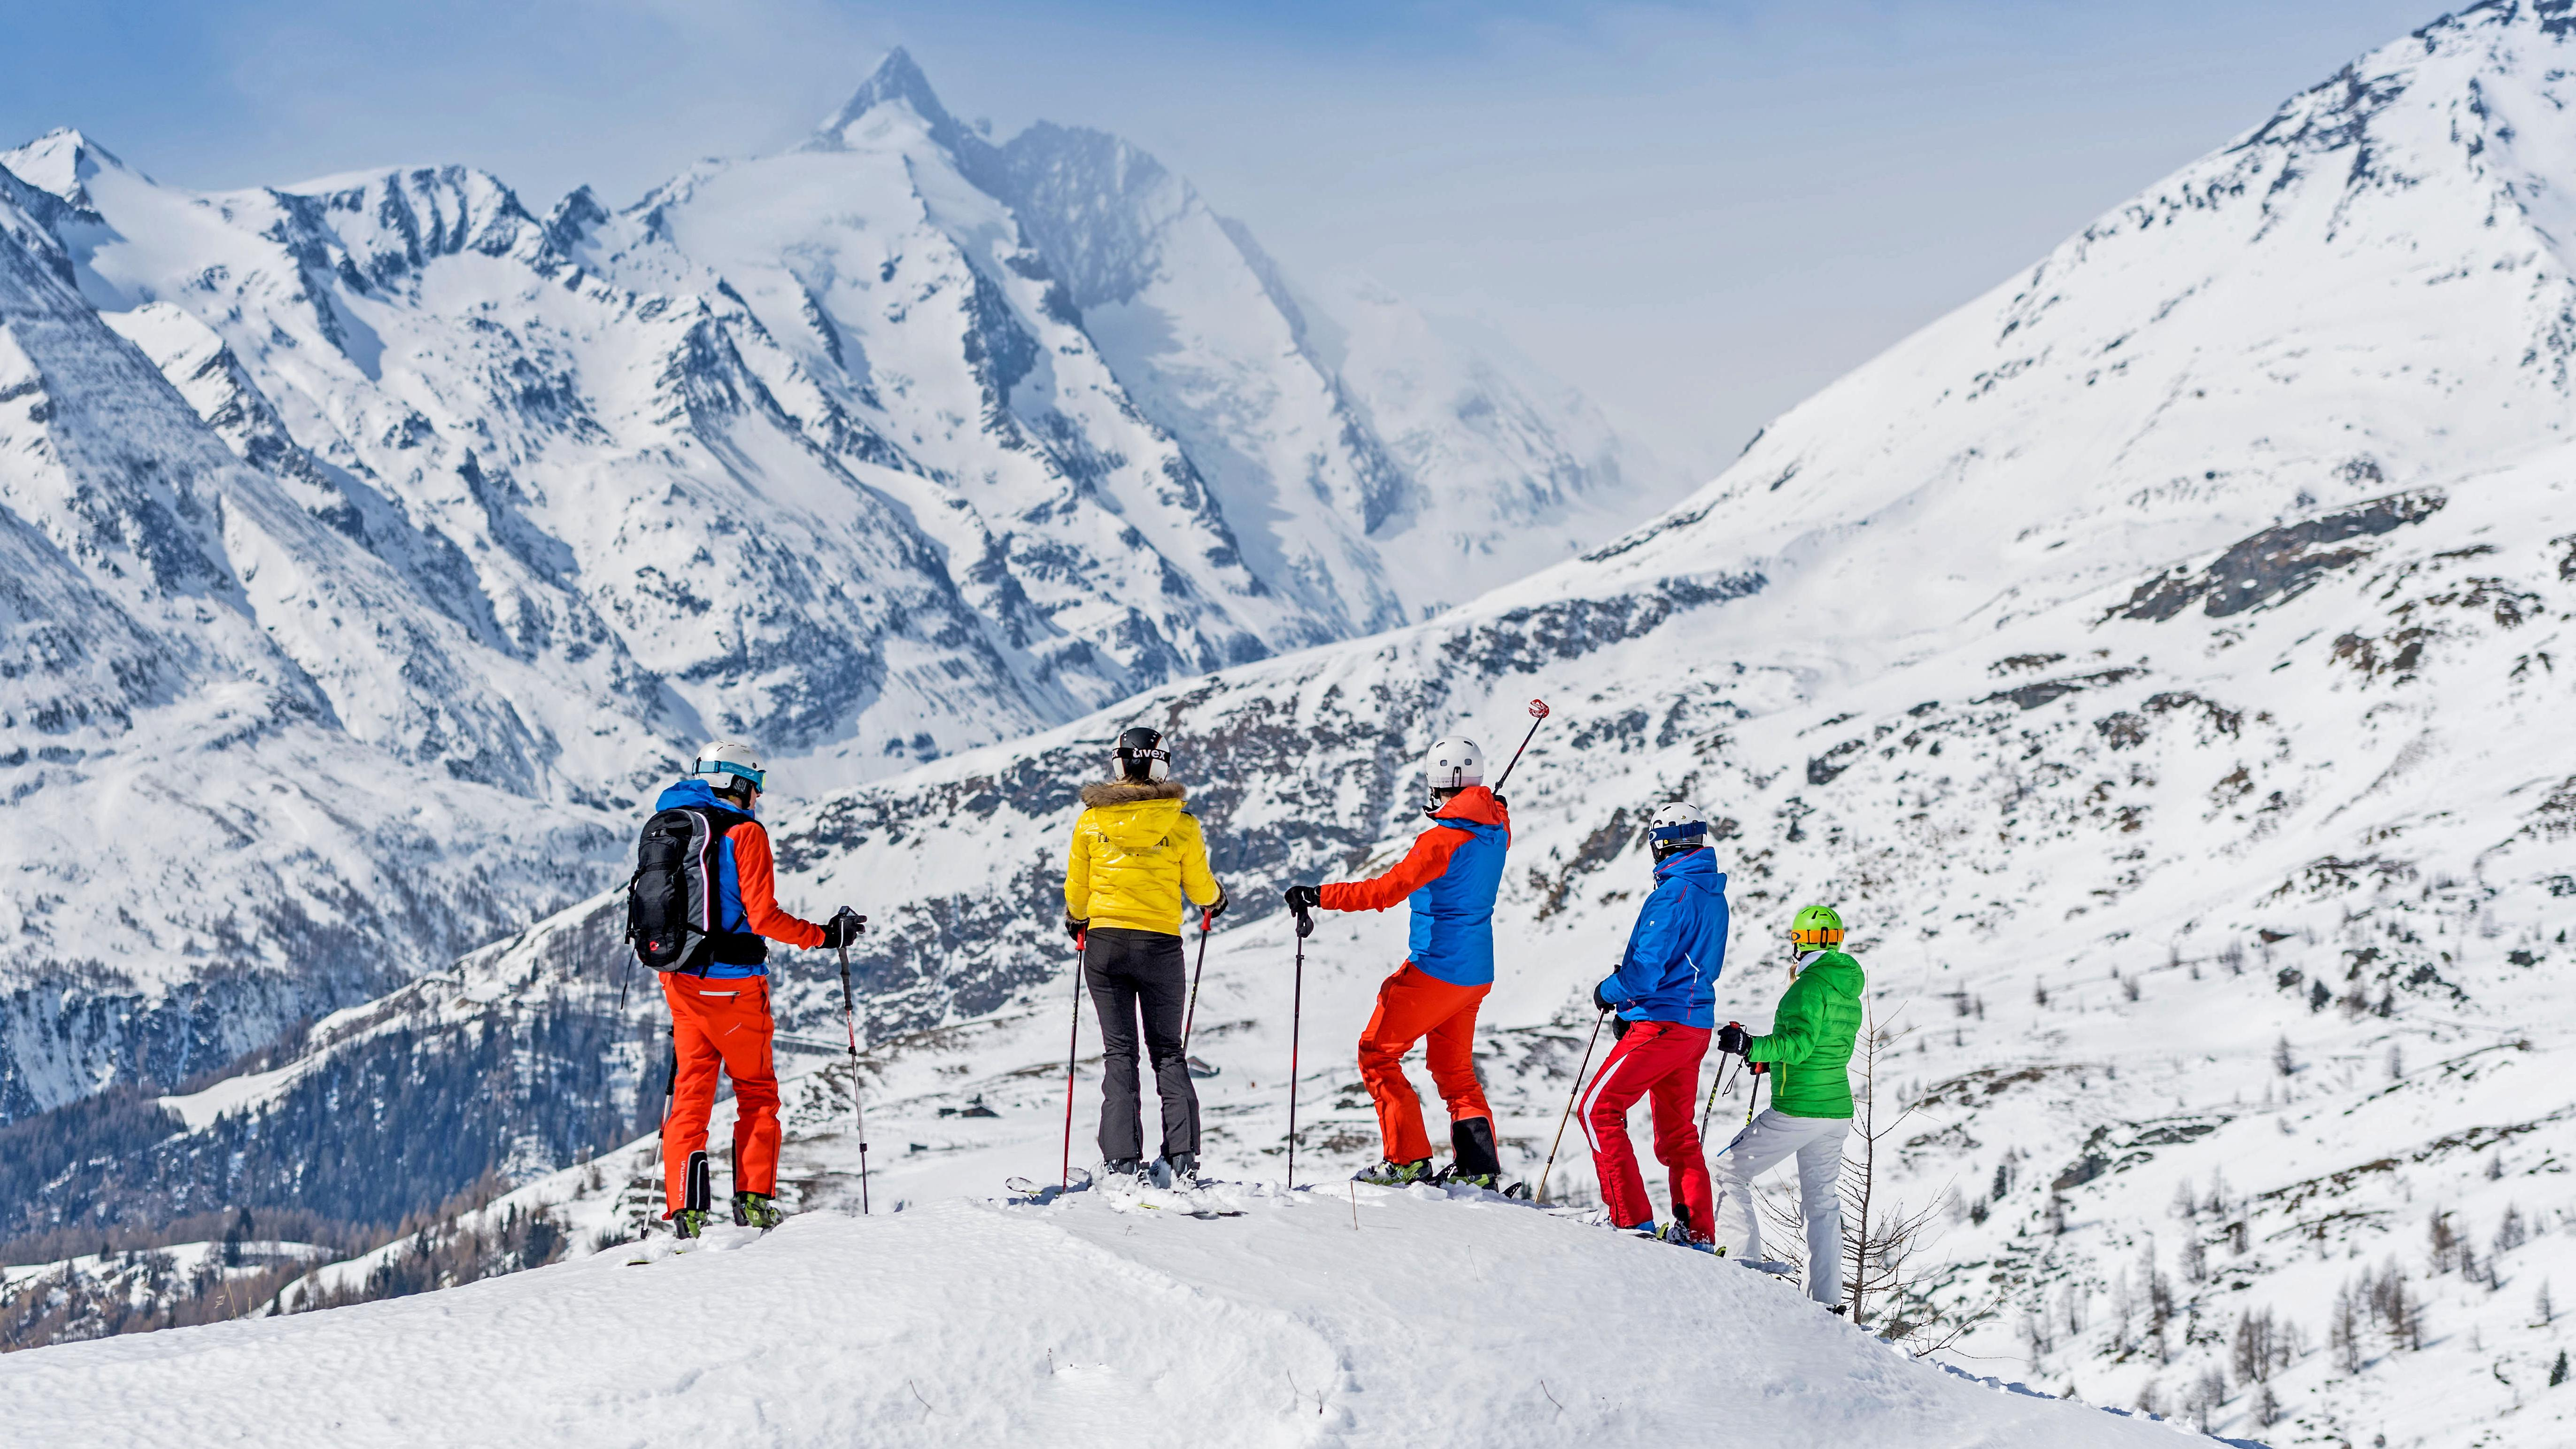 secret skiing: the pistes that austrians keep to themselves | travel